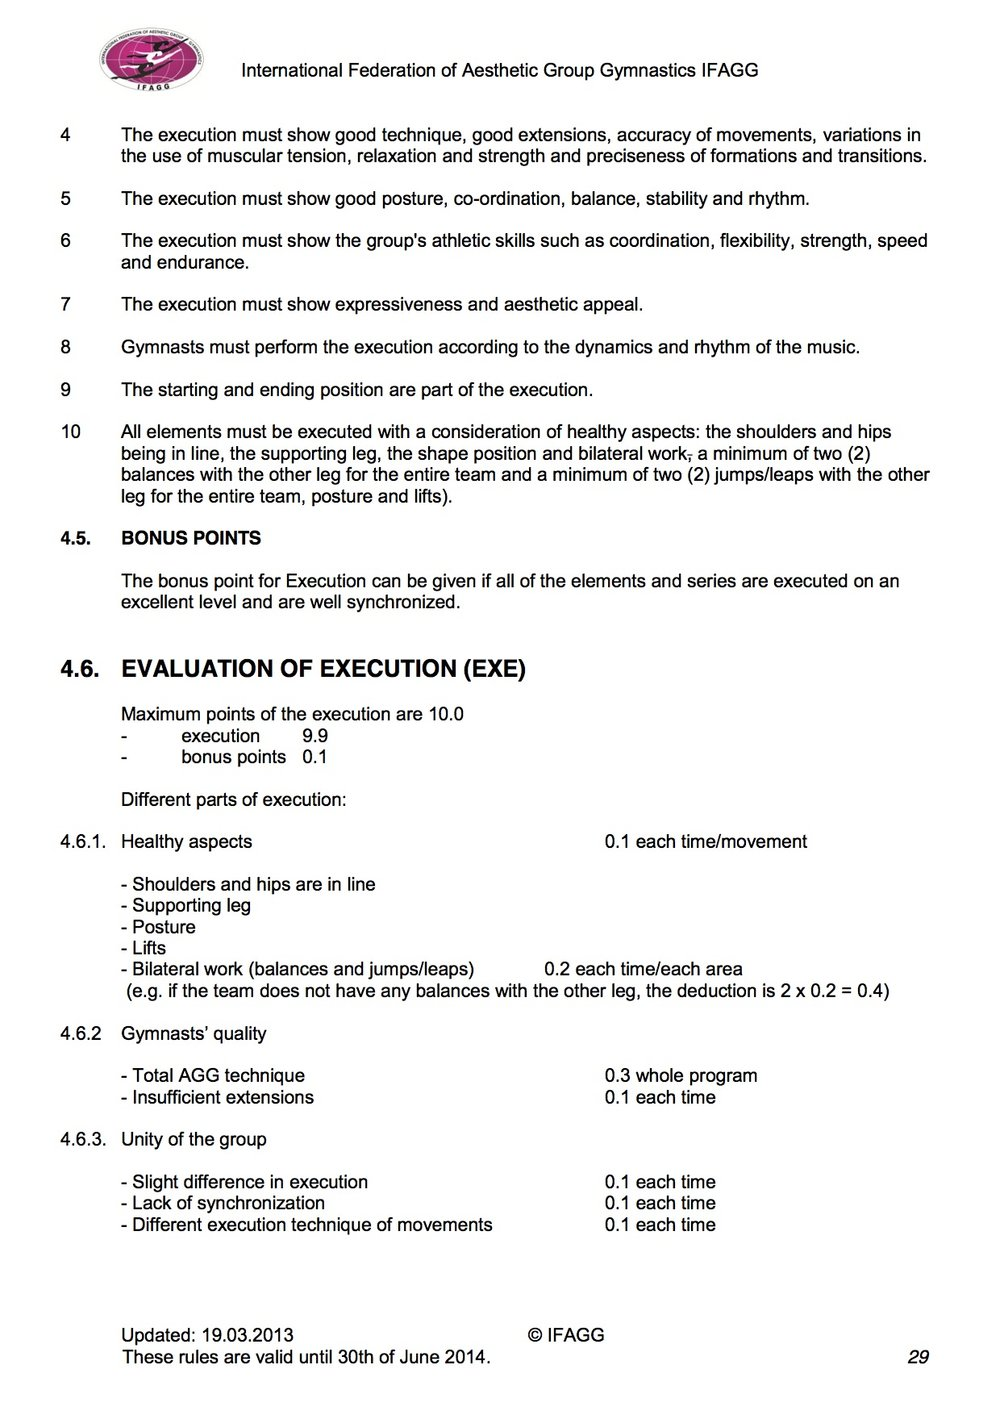 IFAGG Competition rules29.jpg